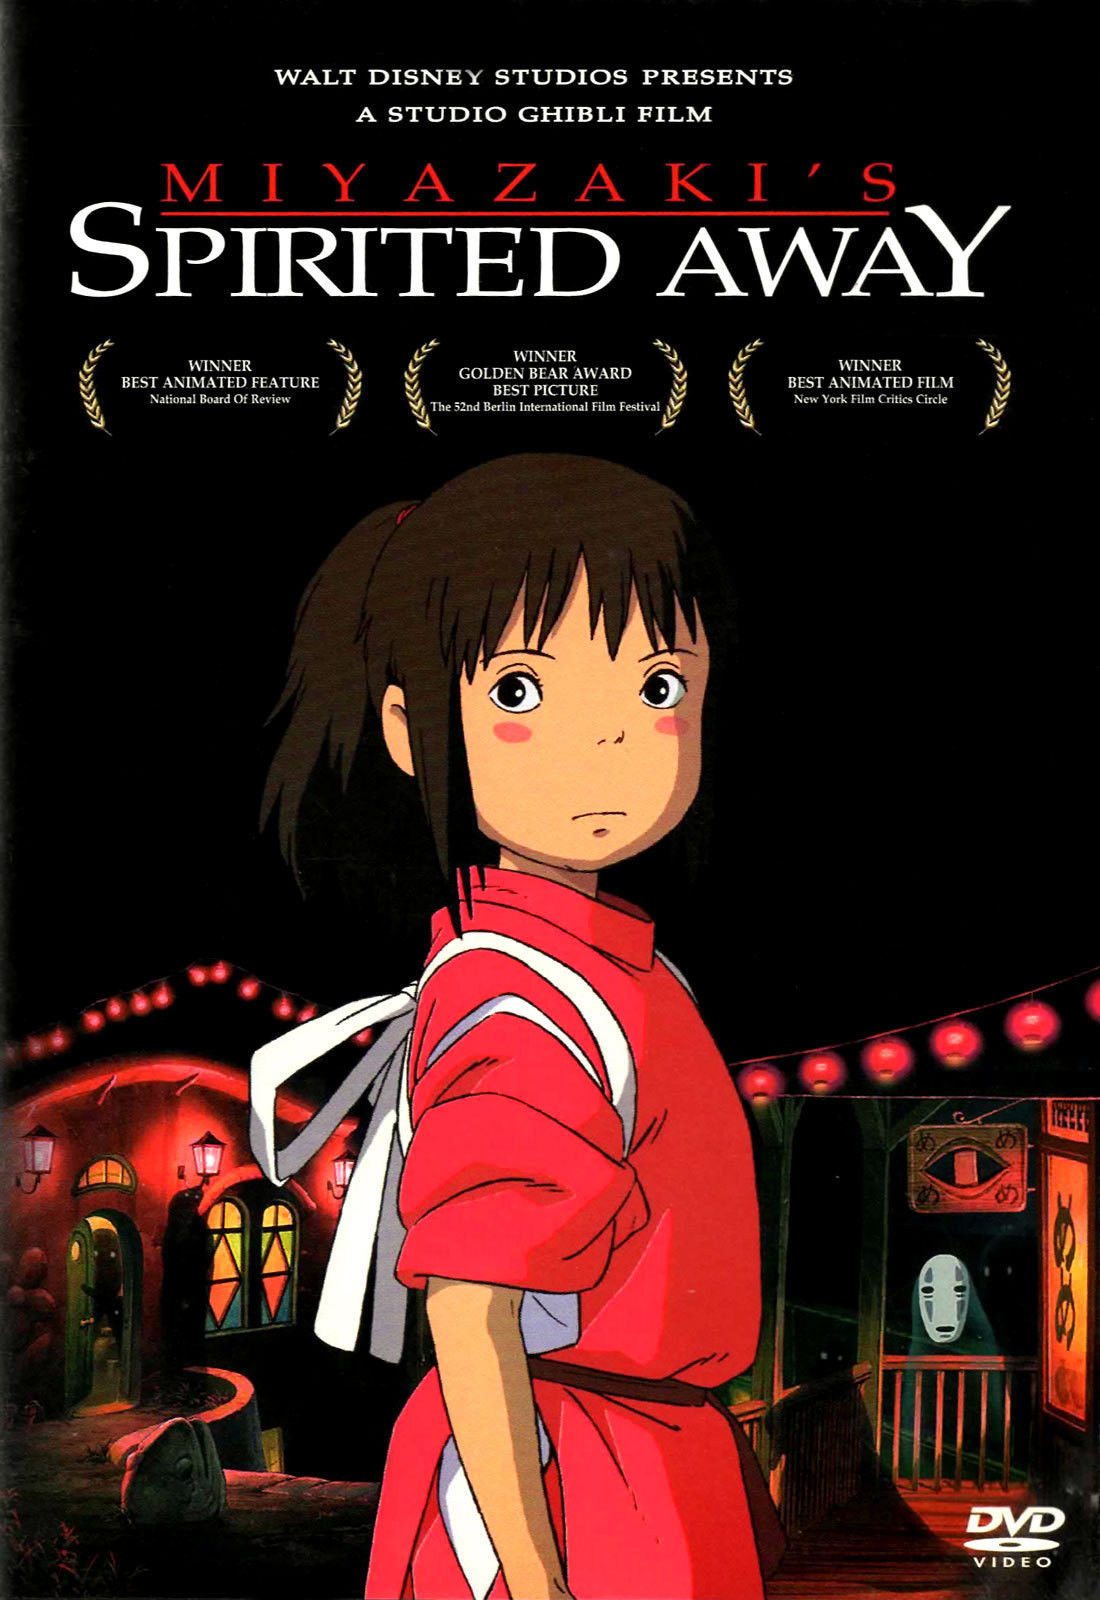 Spirited Away Quotes Spirited Away  Studio Ghibli Wiki  Fandom Poweredwikia